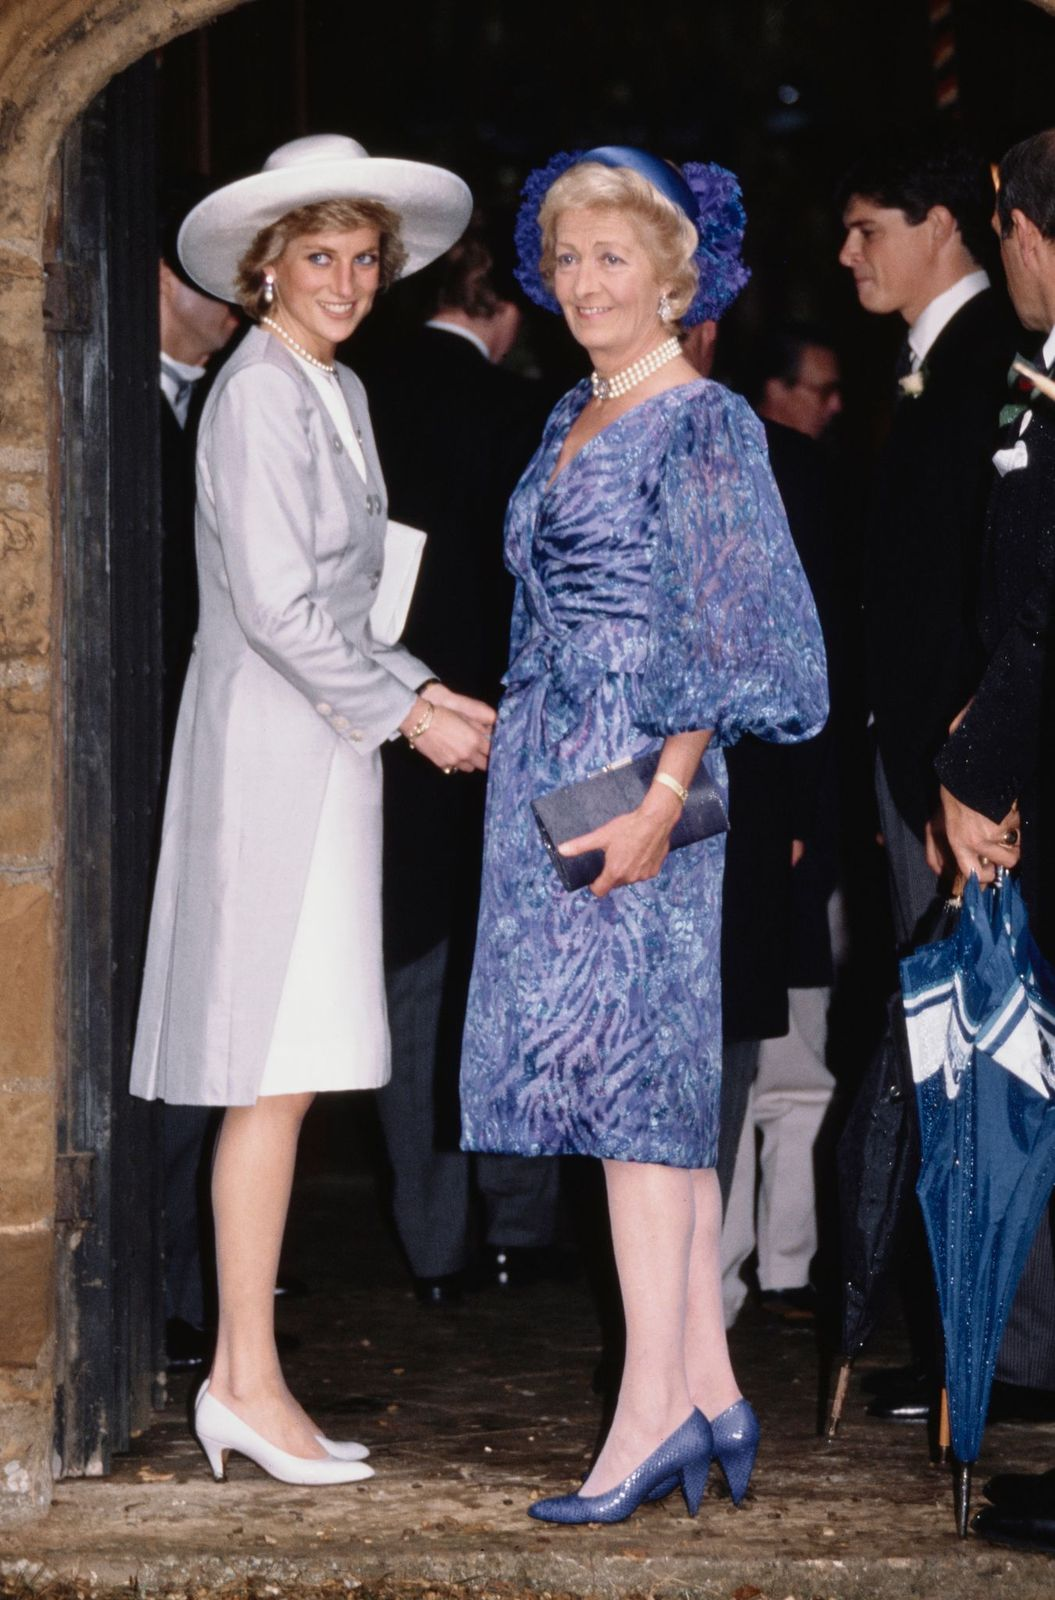 Diana, Princess of Wales (1961 - 1997) with her mother Frances Shand Kydd at the wedding of Diana's brother Viscount Althorp to Victoria Lockwood at St Mary's Church in Great Brington, Northamptonshire, 16th September 1989   Getty Images